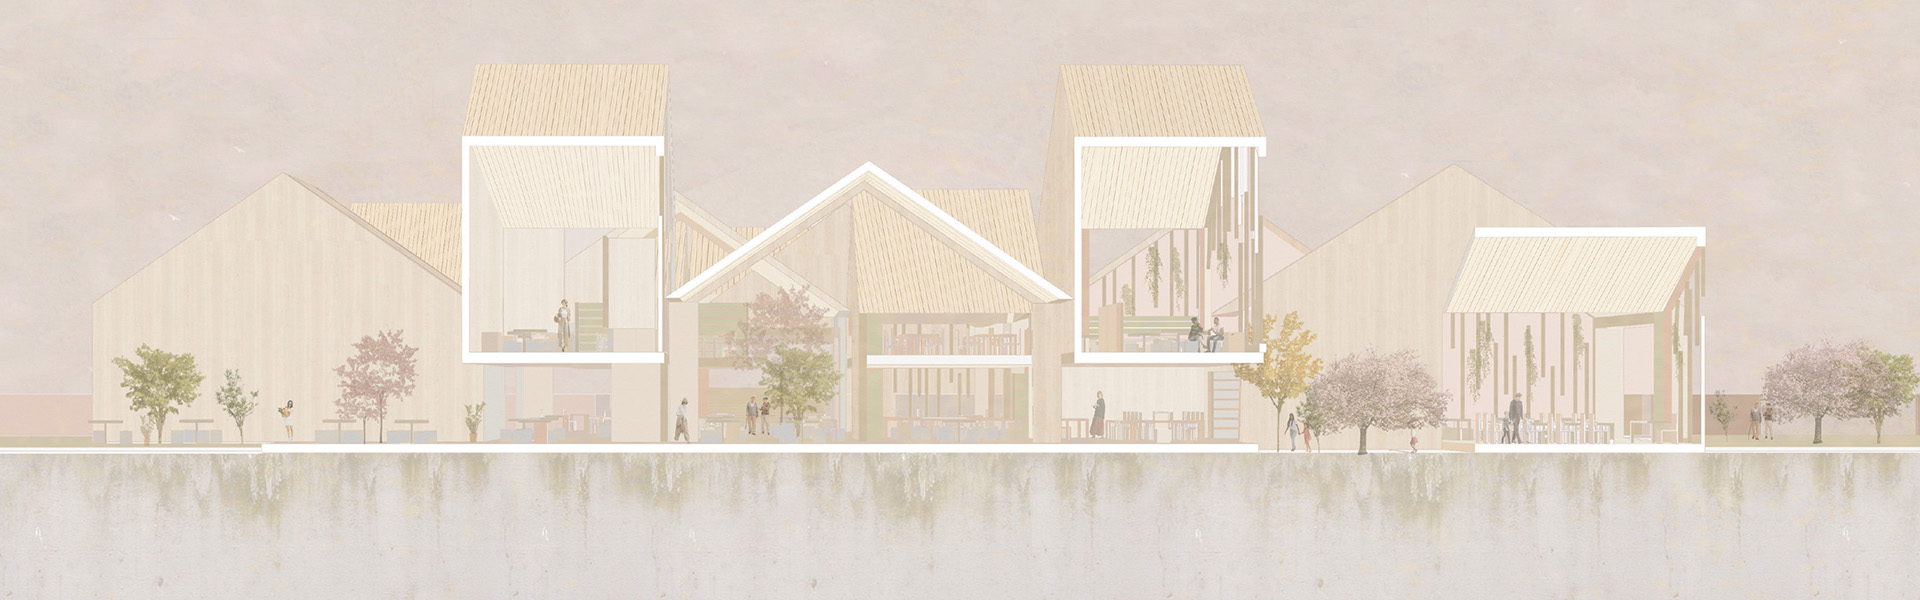 elevation drawing of a large, split level building with triangular shaped rooftops